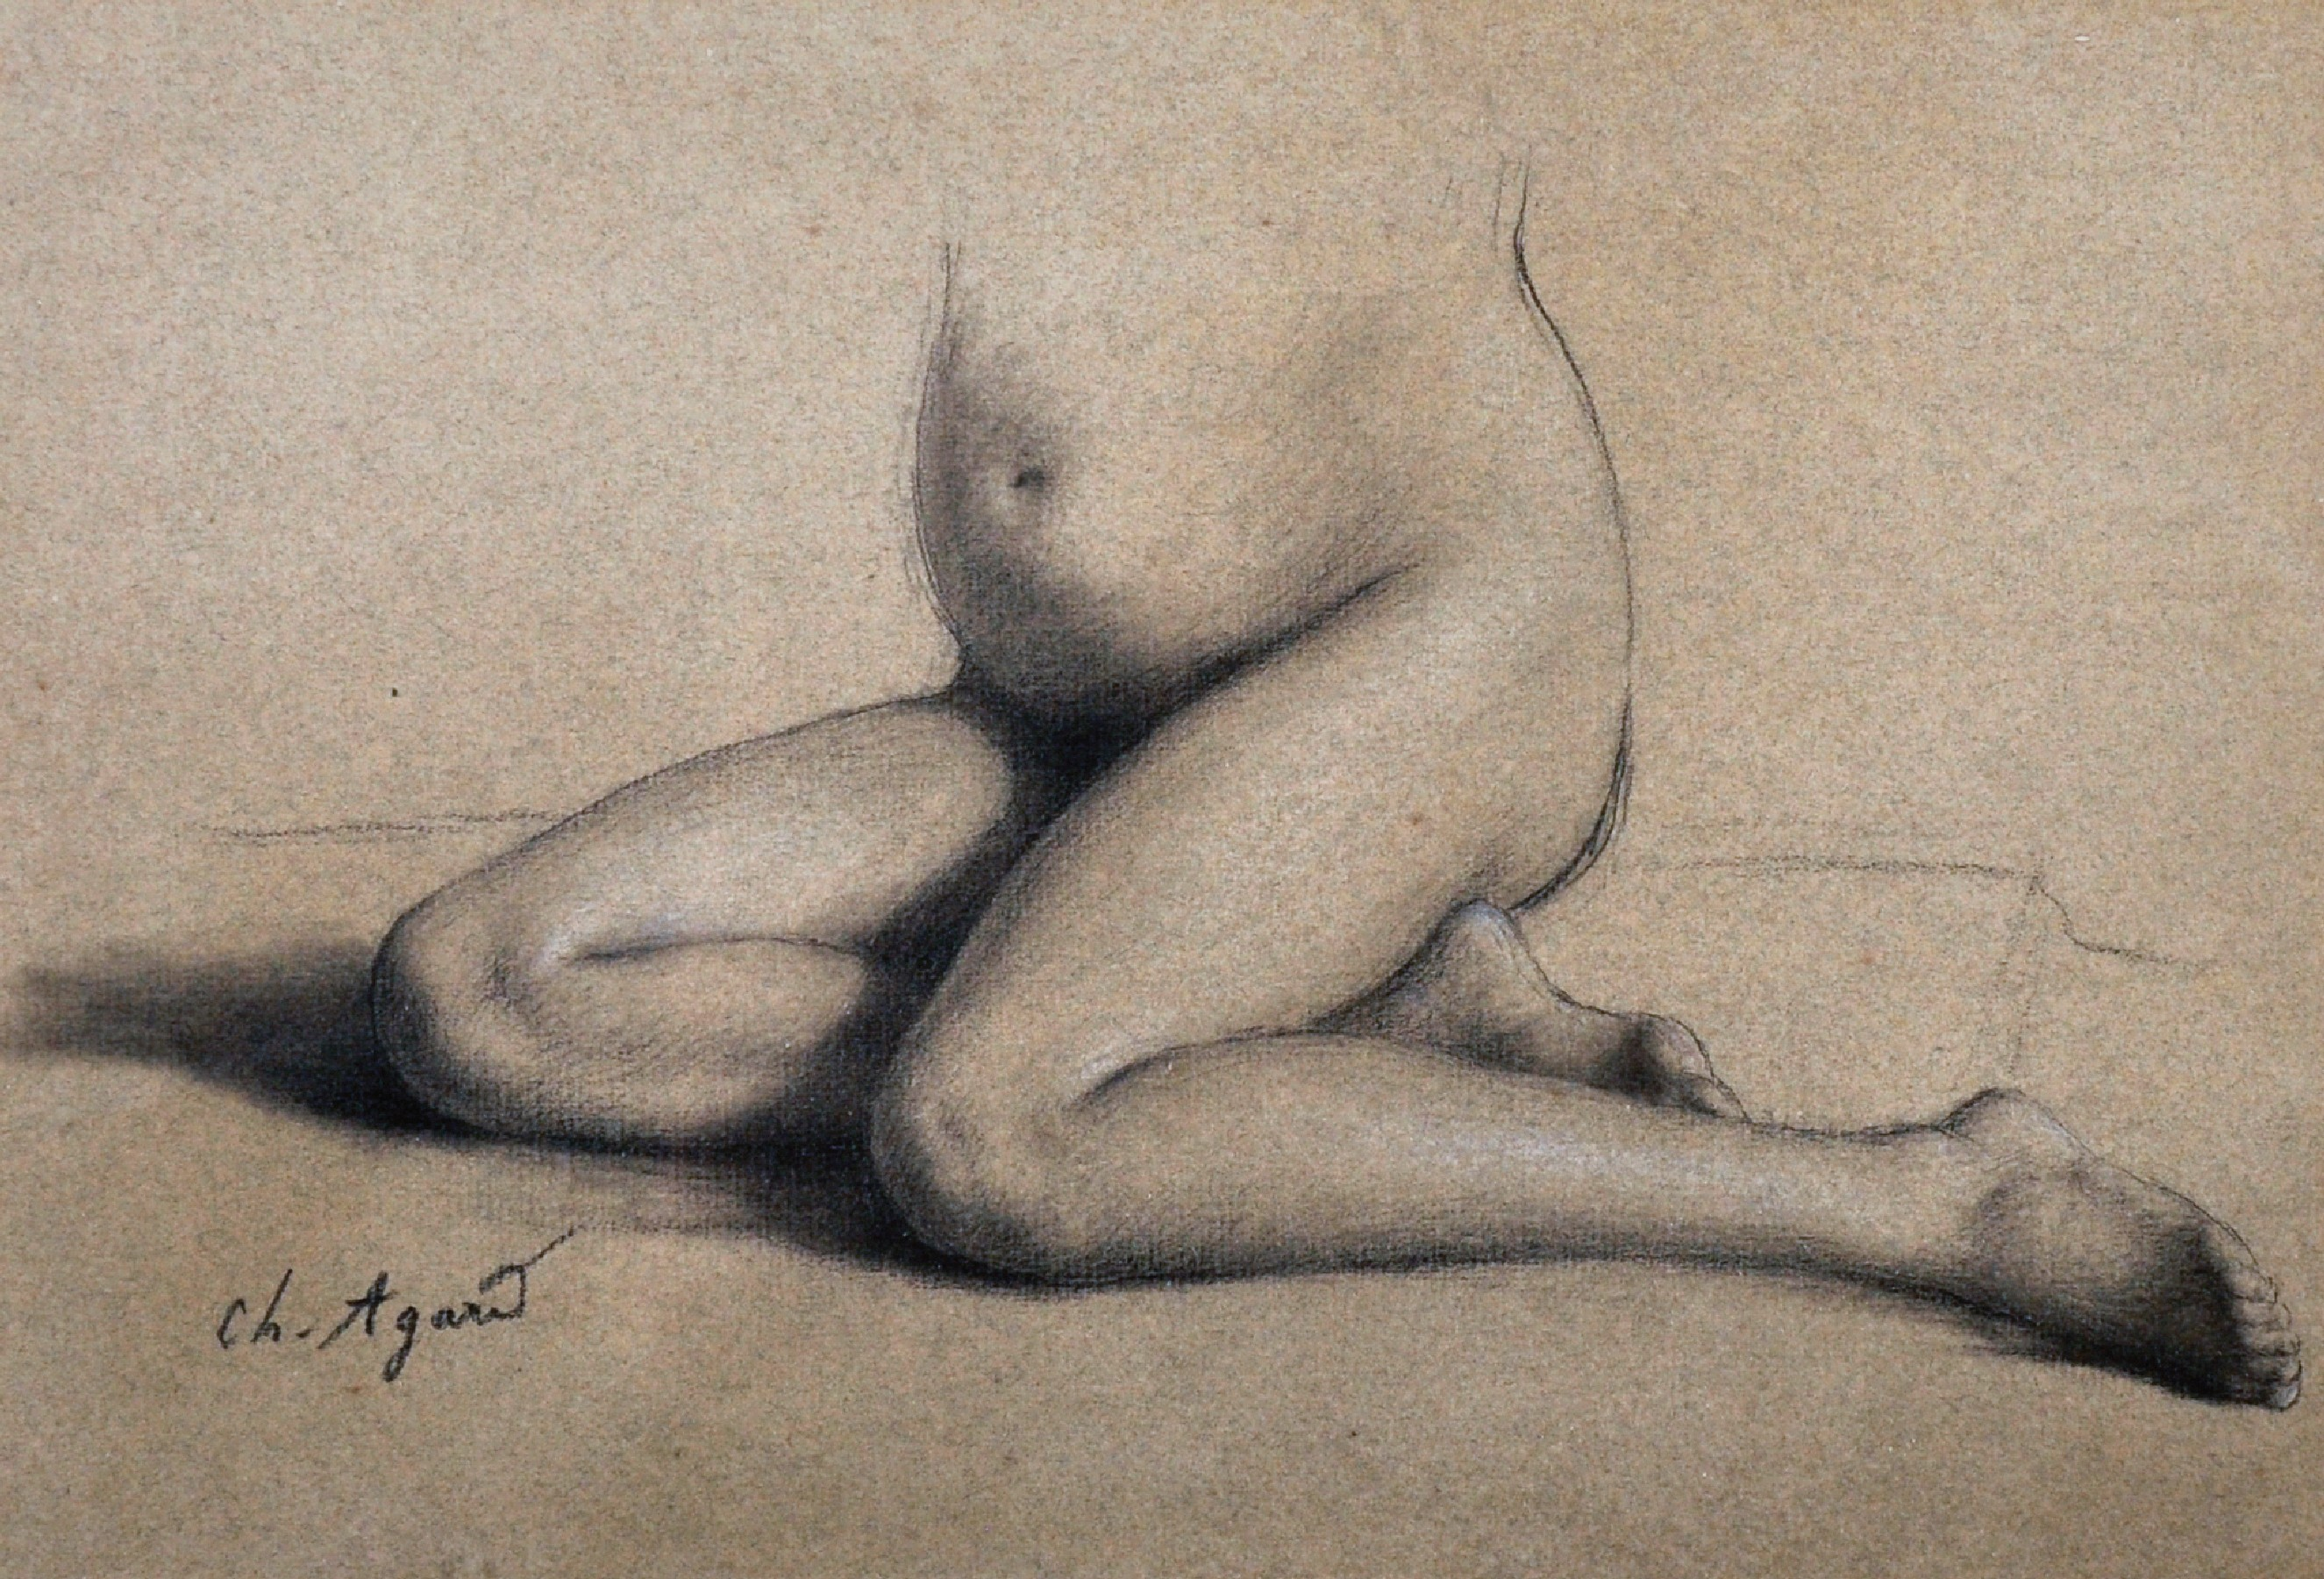 """Charles Jean Agard (1866-1950) French. Study of a Lower Half of a Nude Female, Pencil, Signed, 7.75"""""""